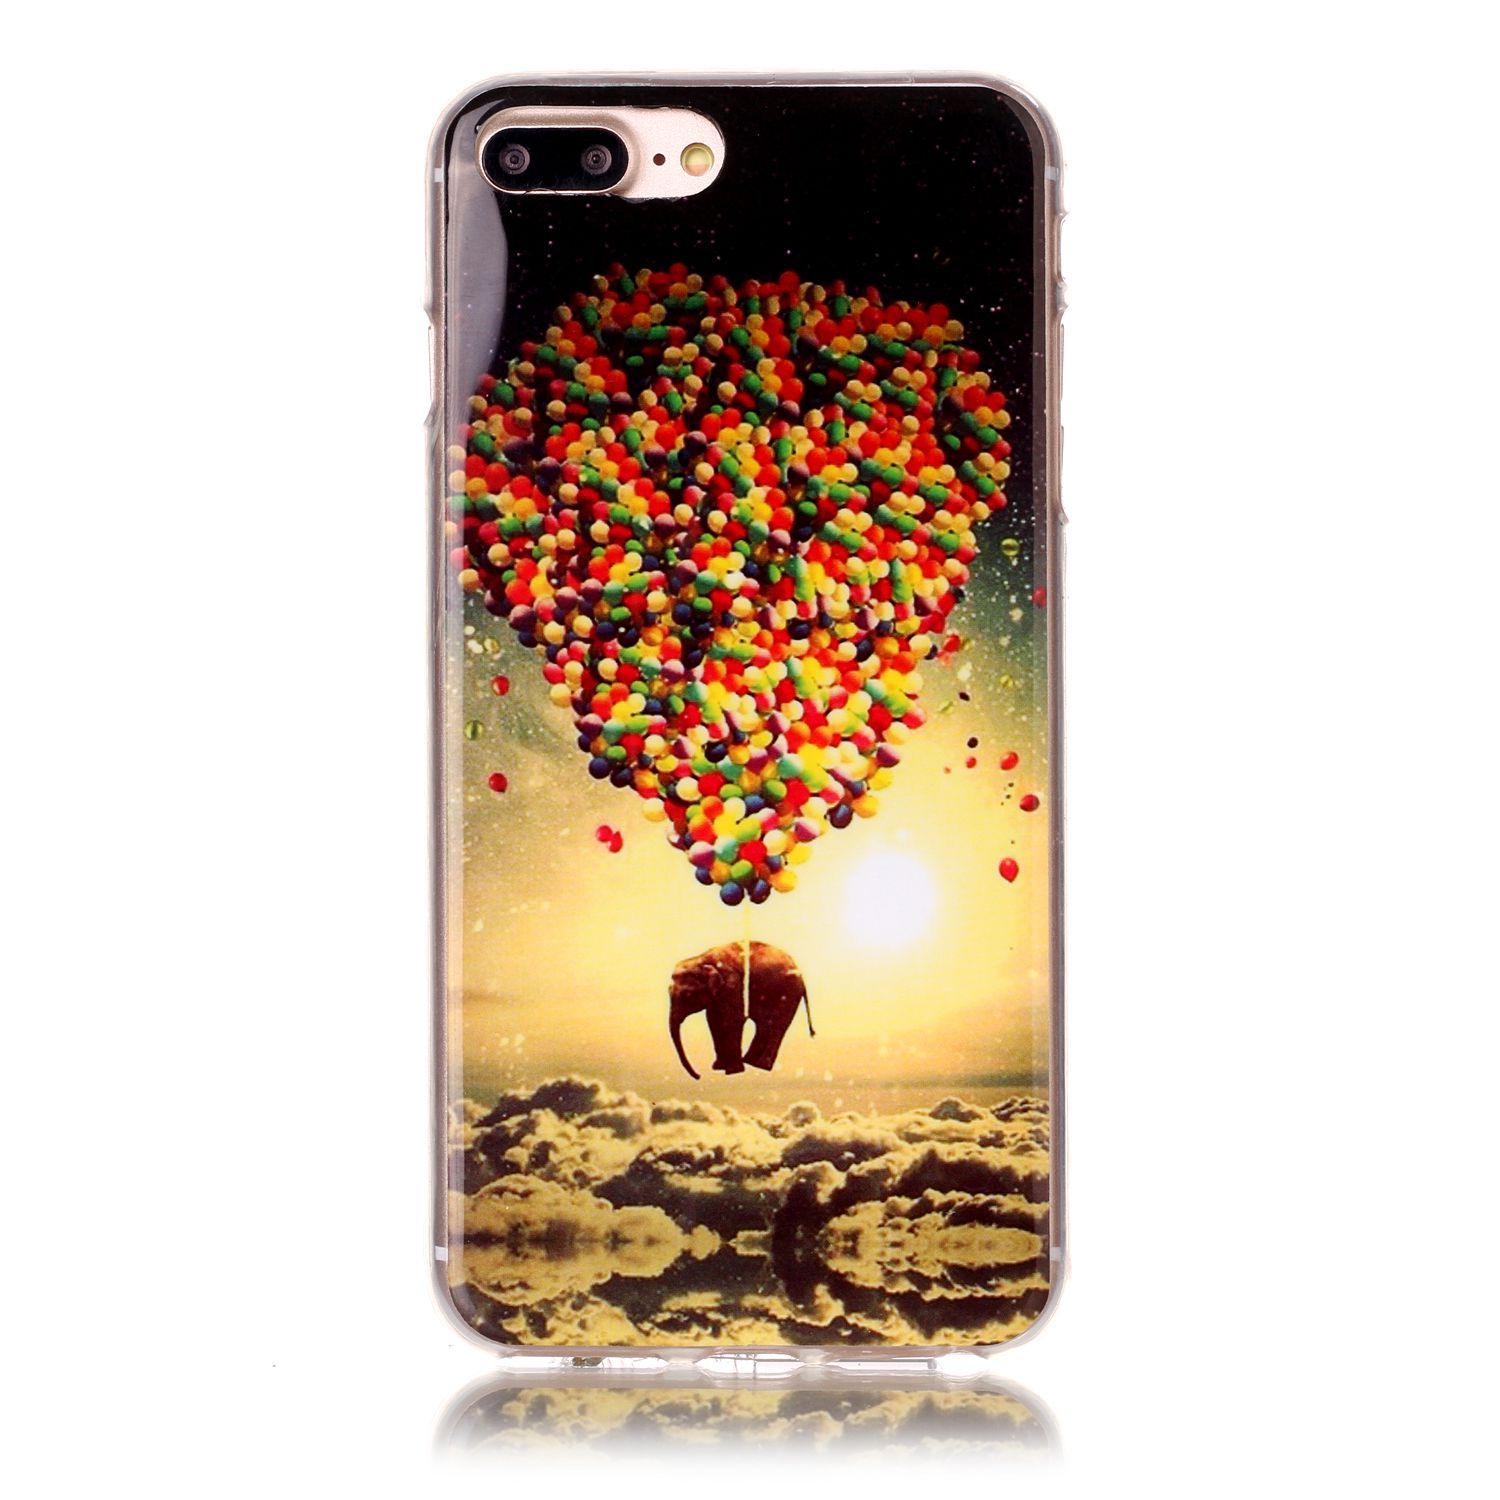 Kryt pre iPhone 7 Plus / 8 Plus Carrying balloons elephant